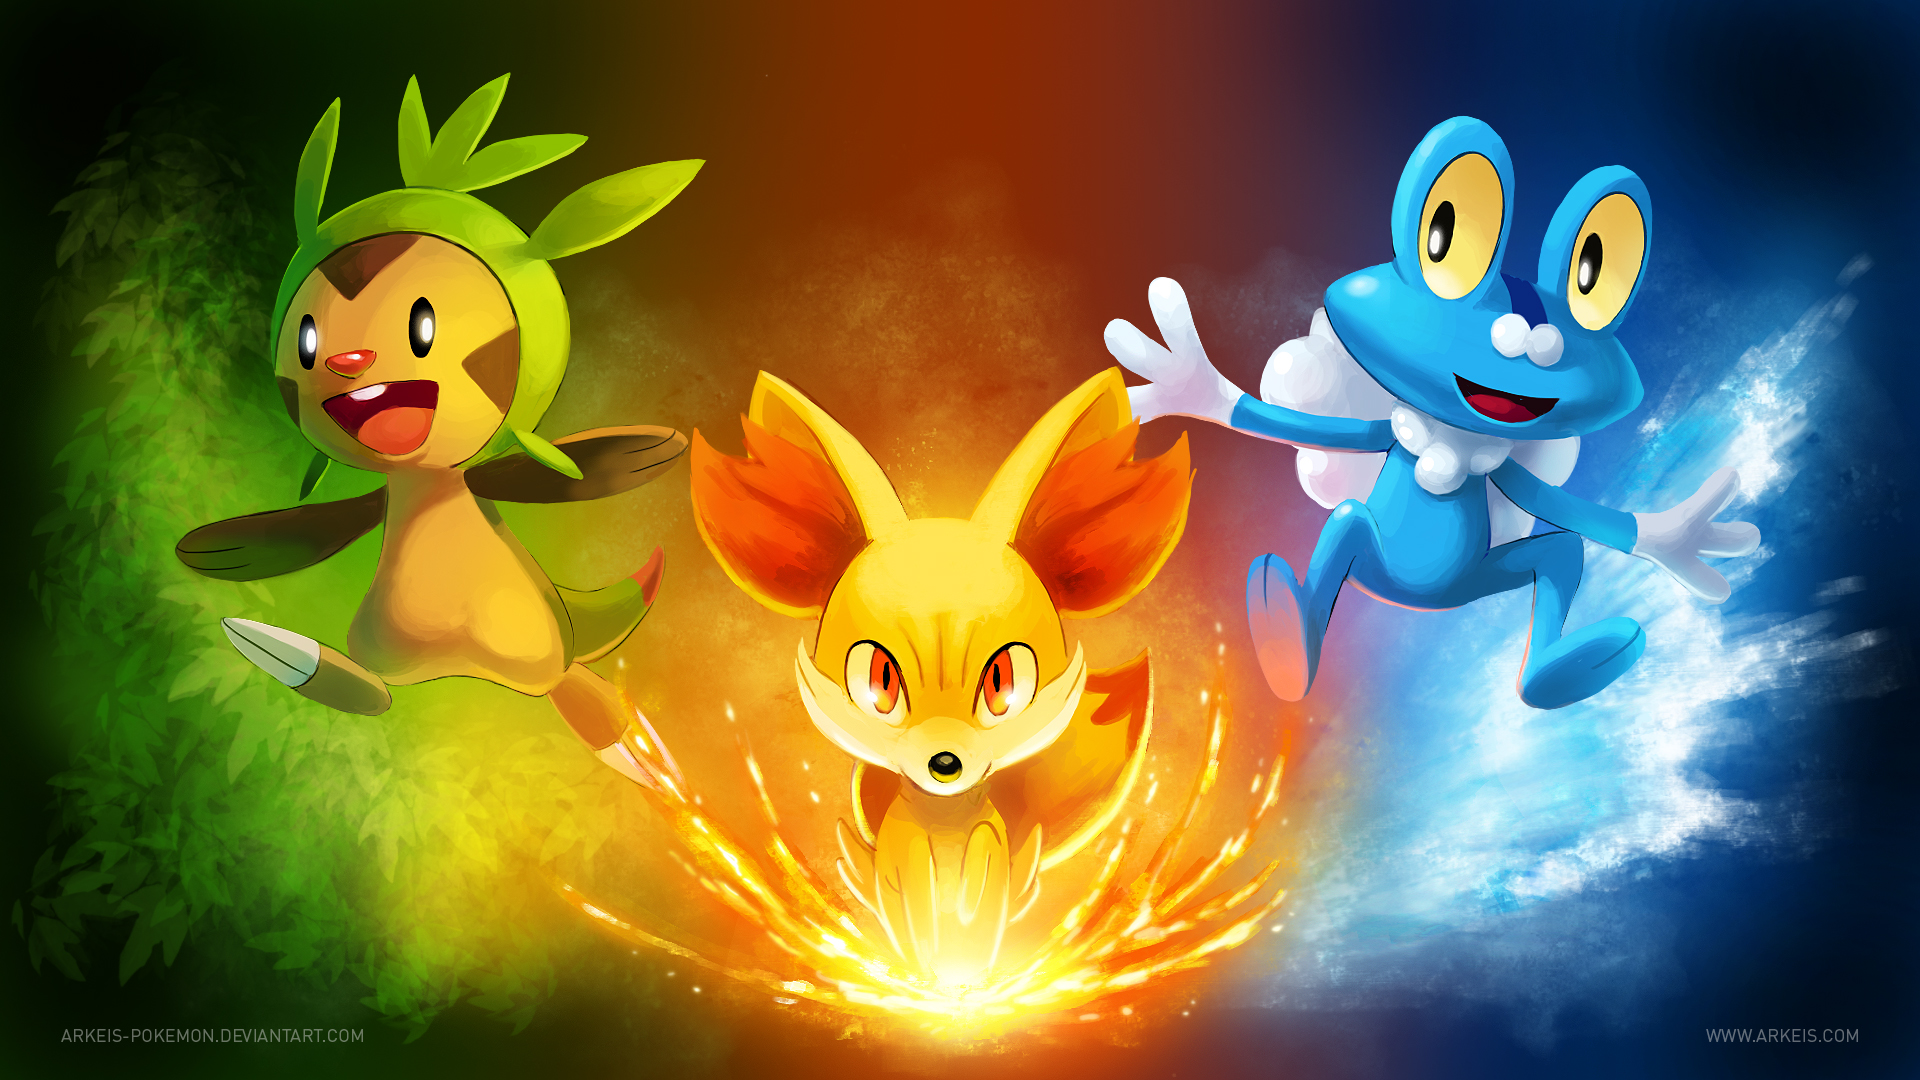 [Wallpaper] Pokemon X/Y Starters by arkeis-pokemon